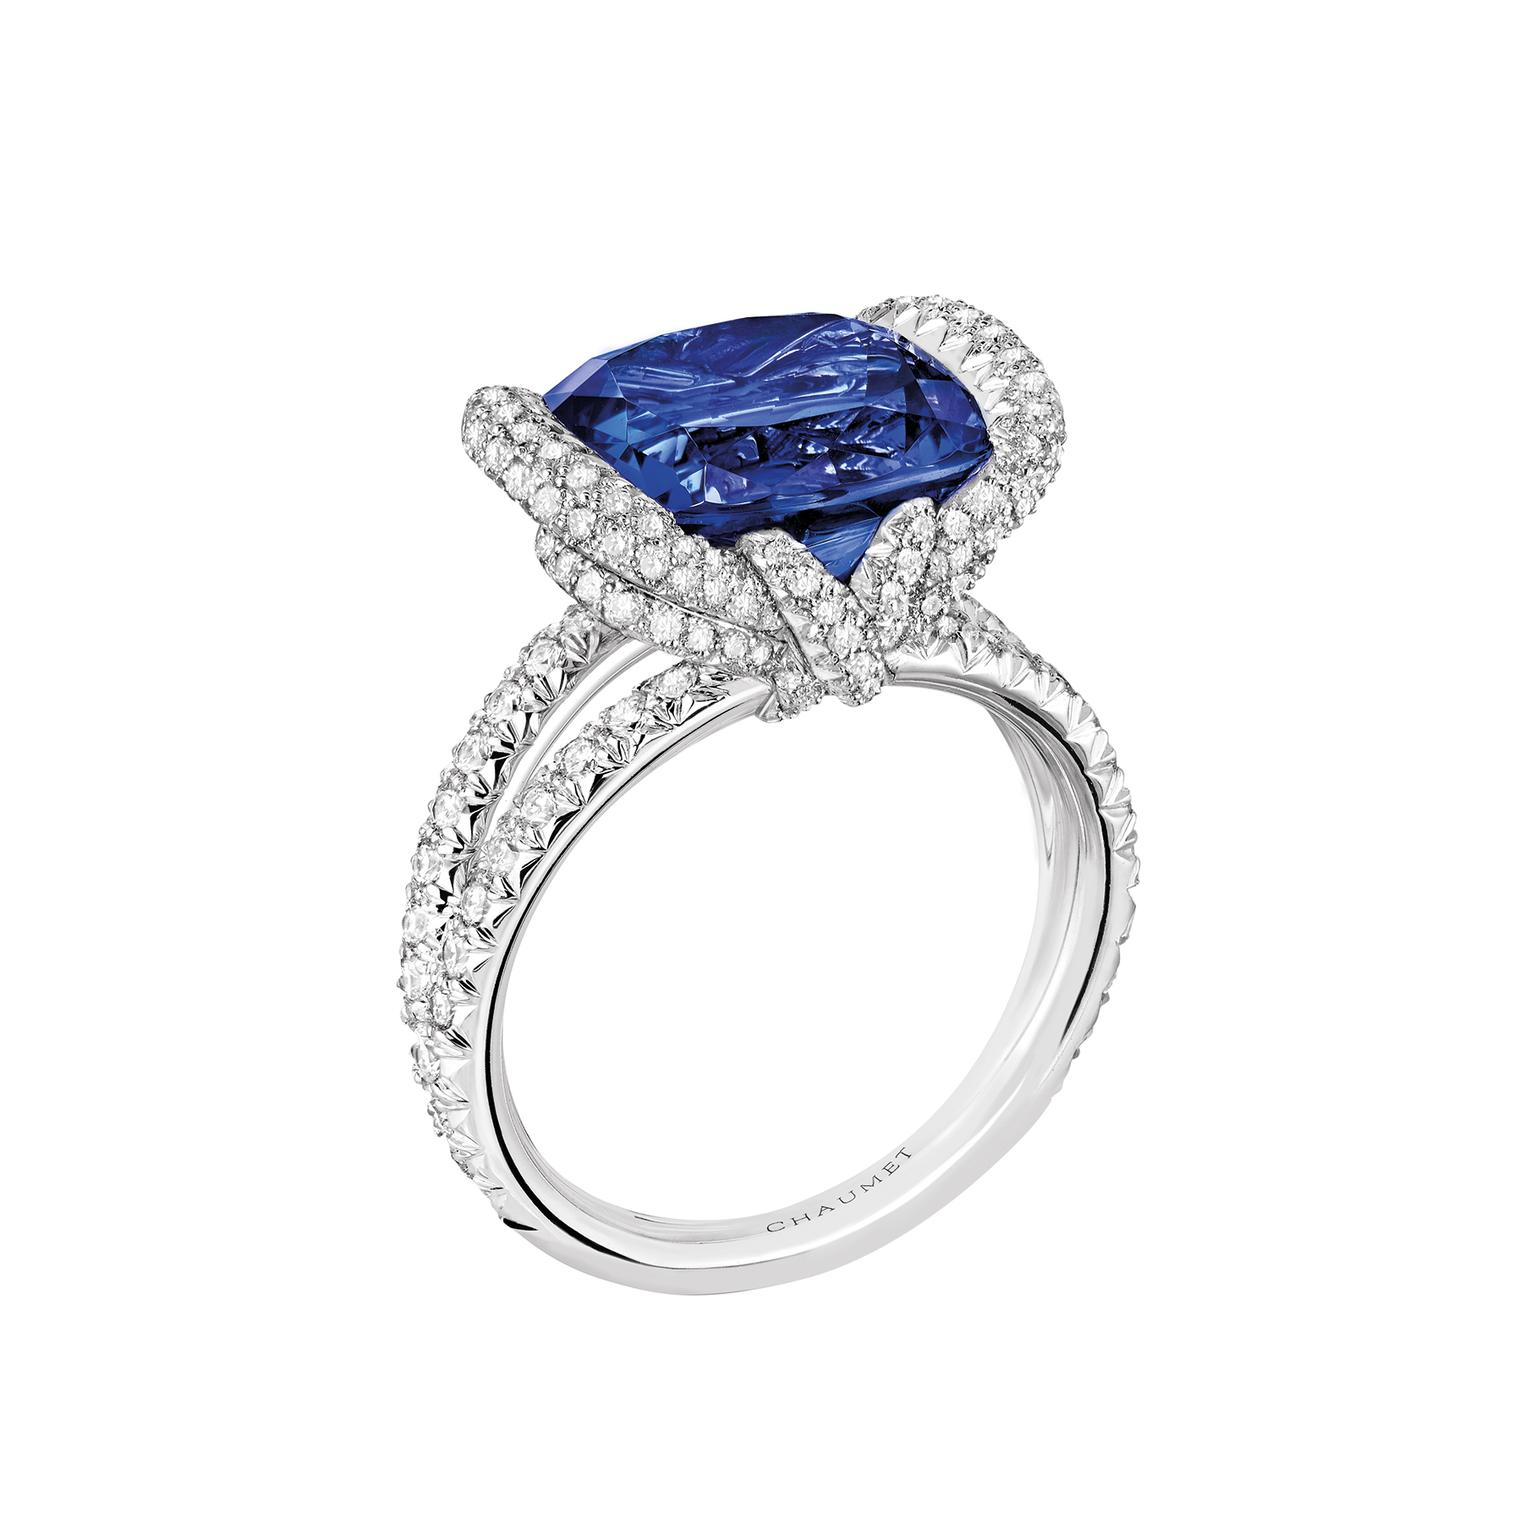 Chaumet Liens d'Amour sapphire ring